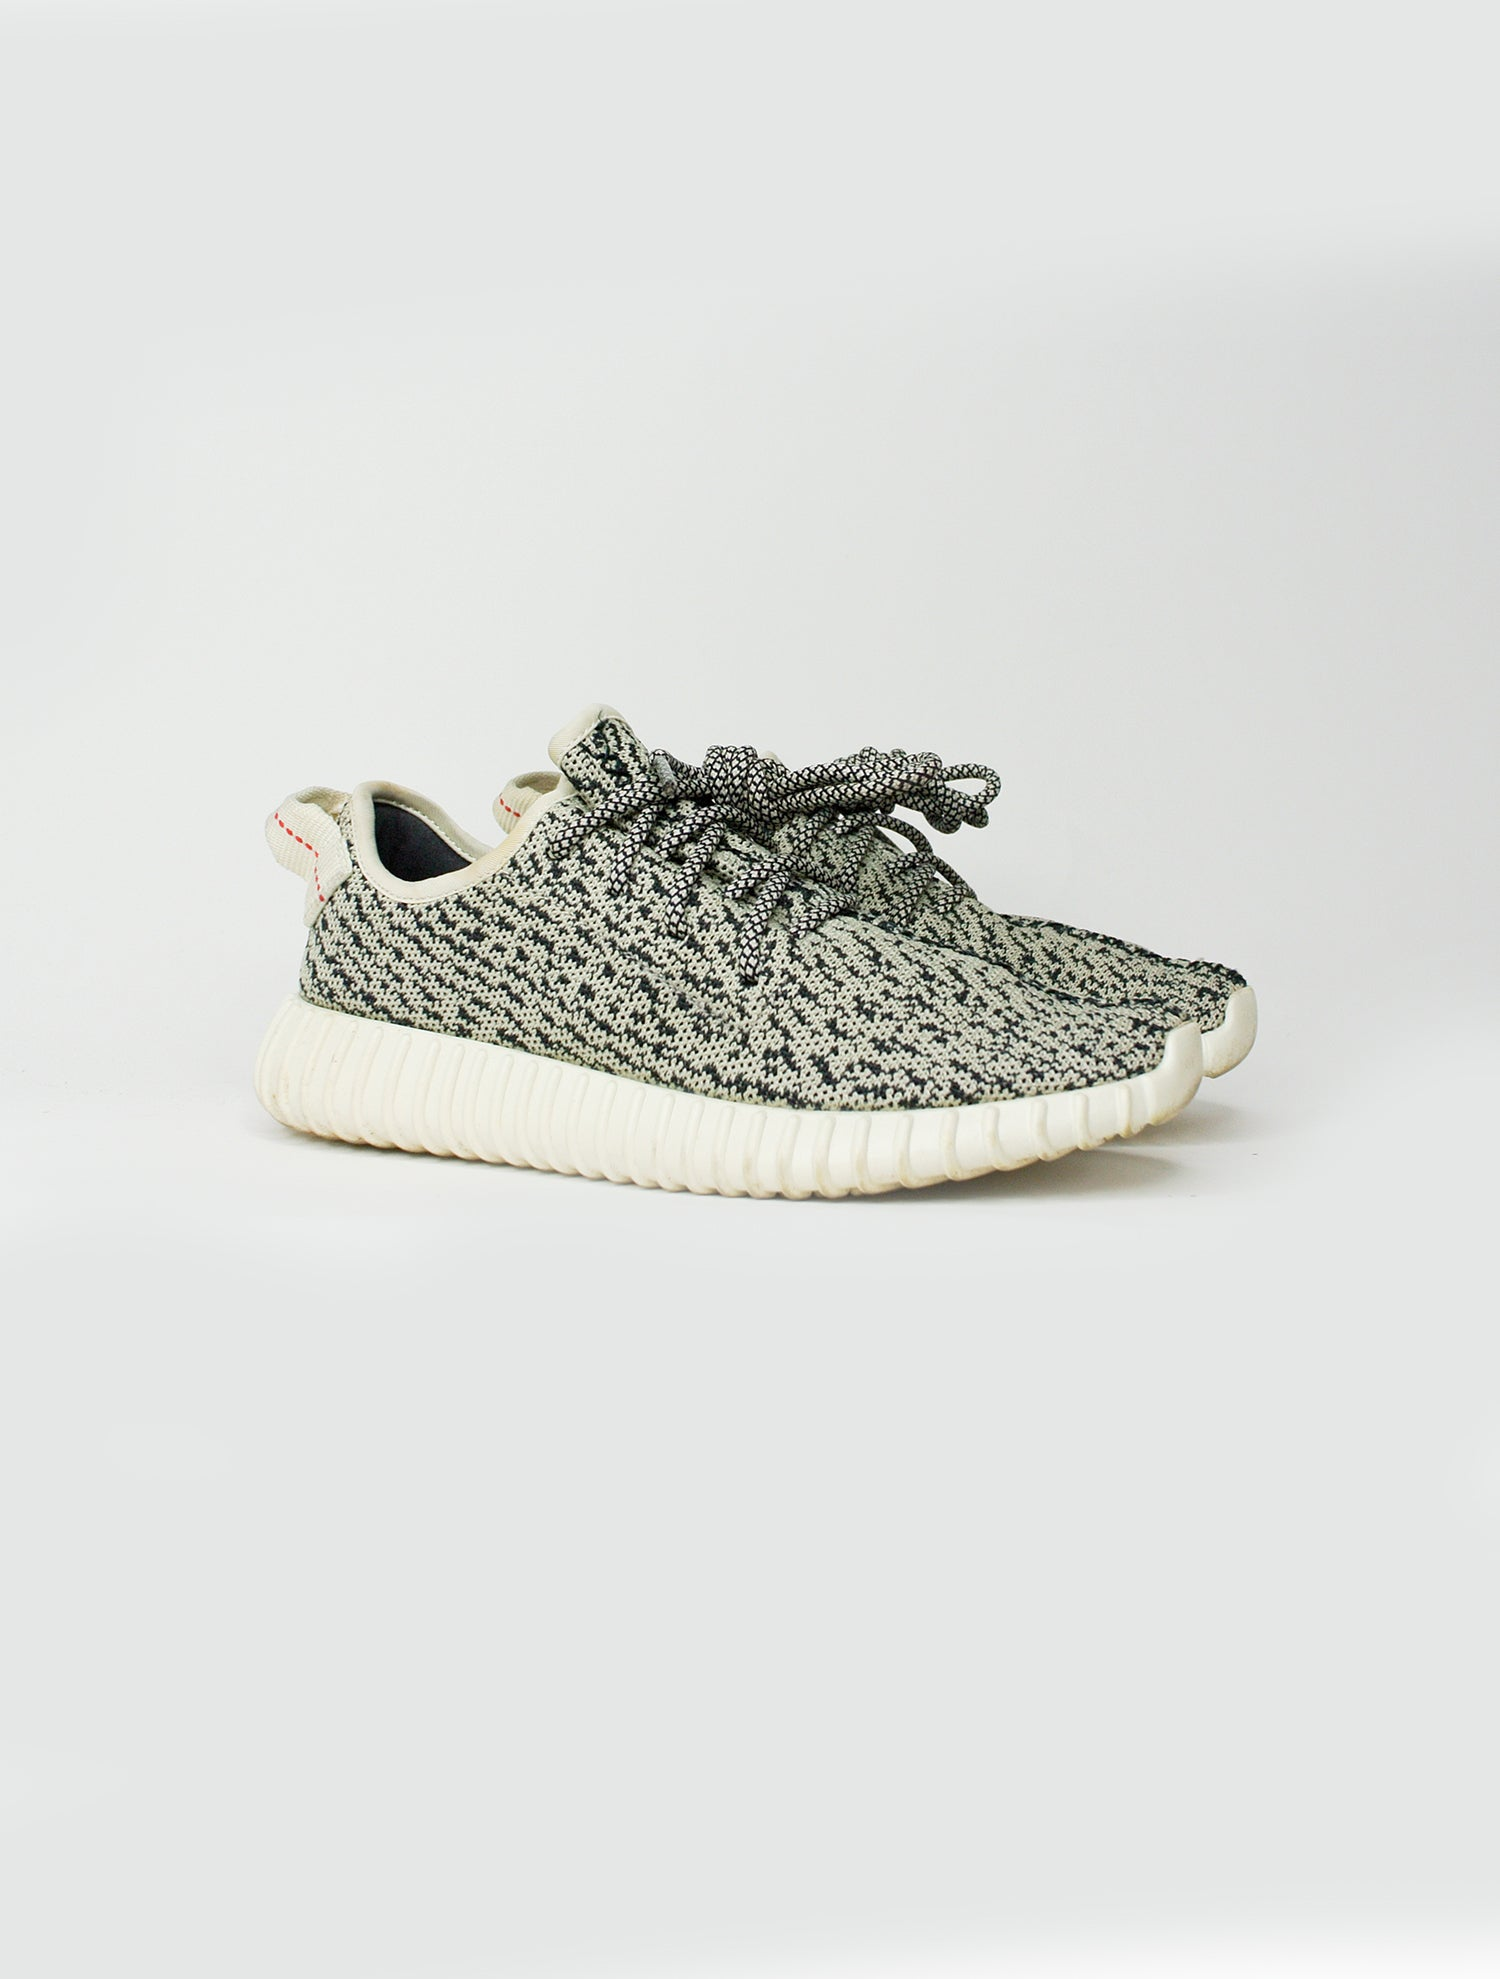 Yeezy 350 Boost Turtledove Sneakers Sz 6.5